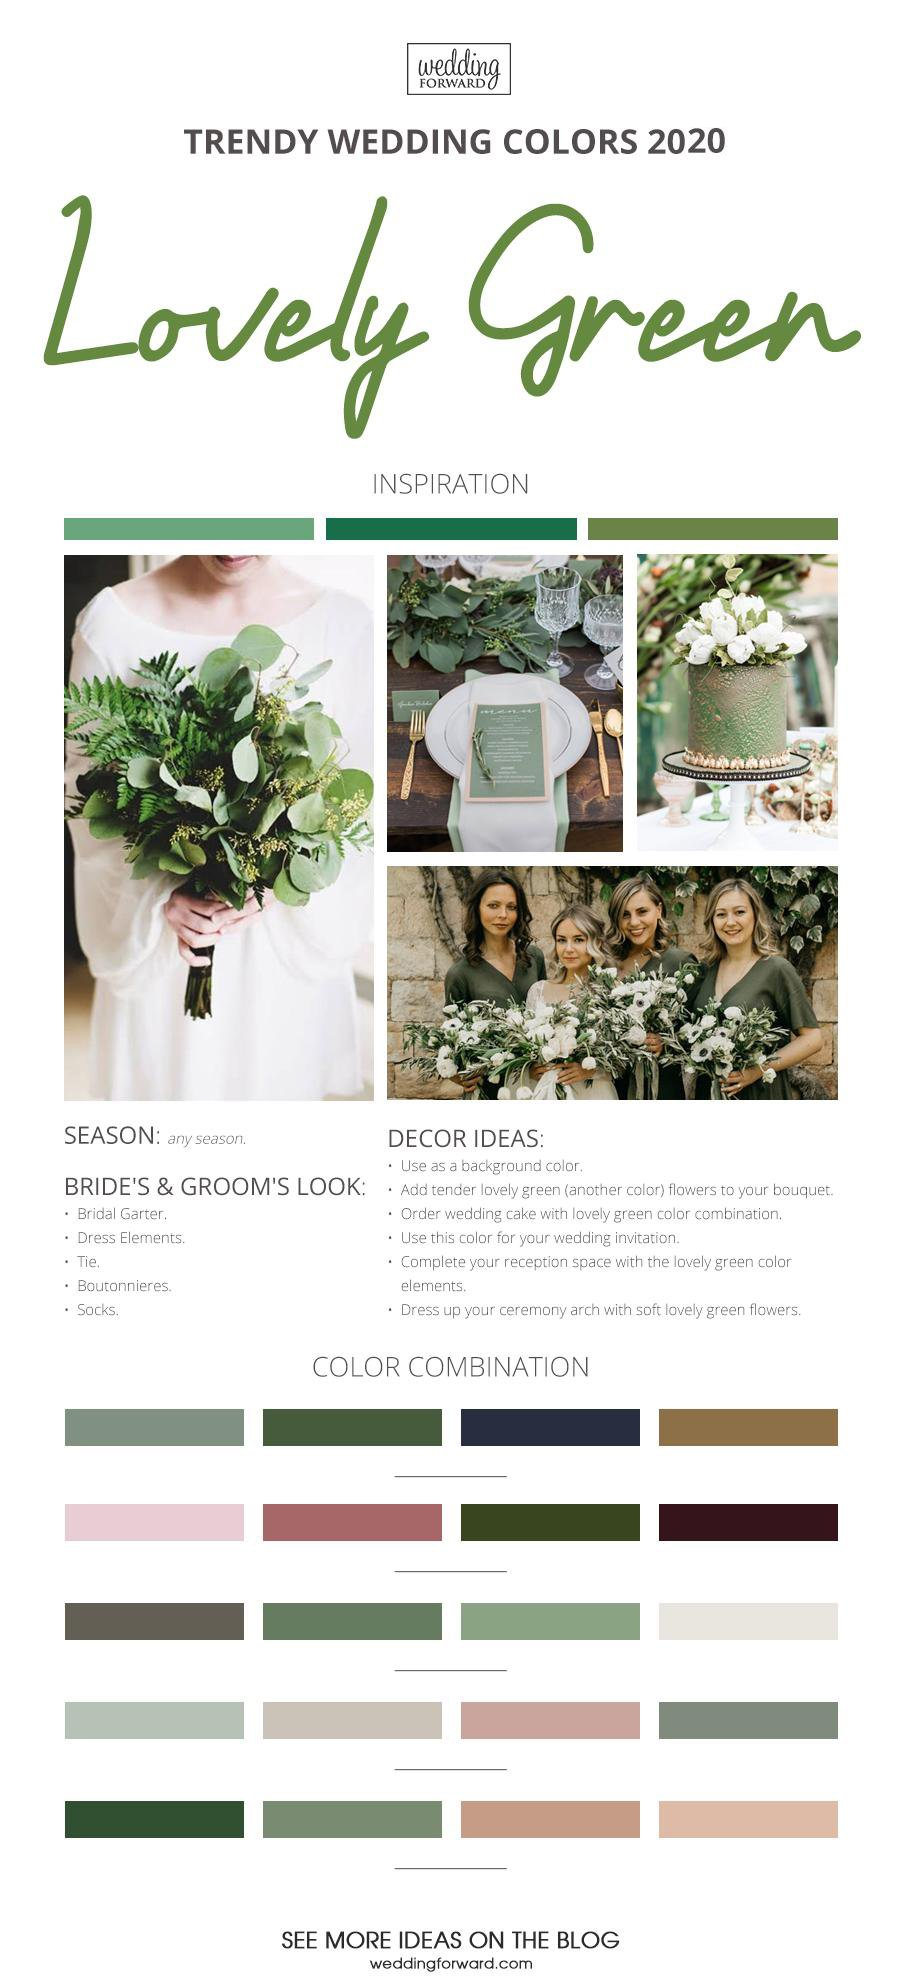 The Best Wedding Color Ideas For 2020 Wedding Forward